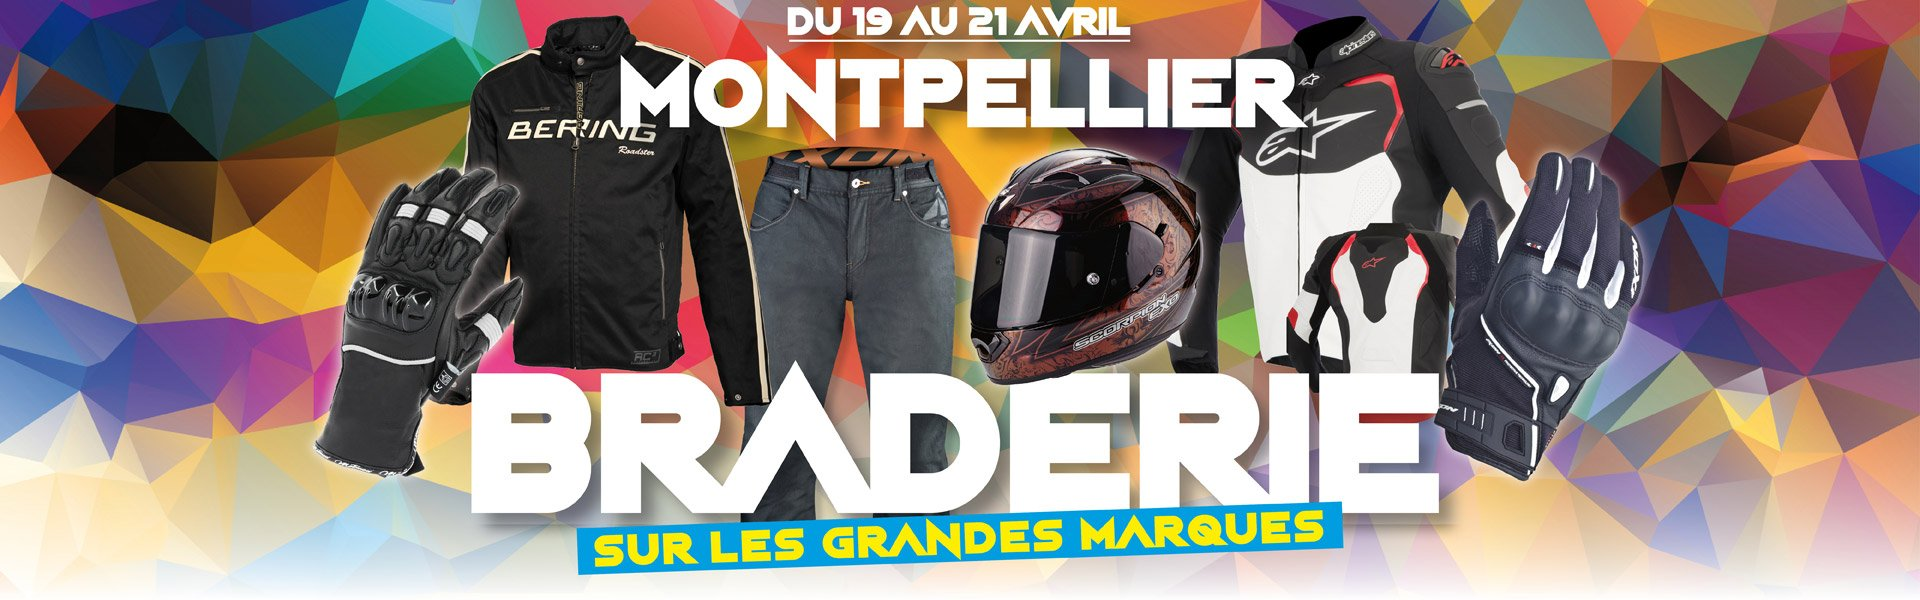 Braderie Cardy Montpellier 2018